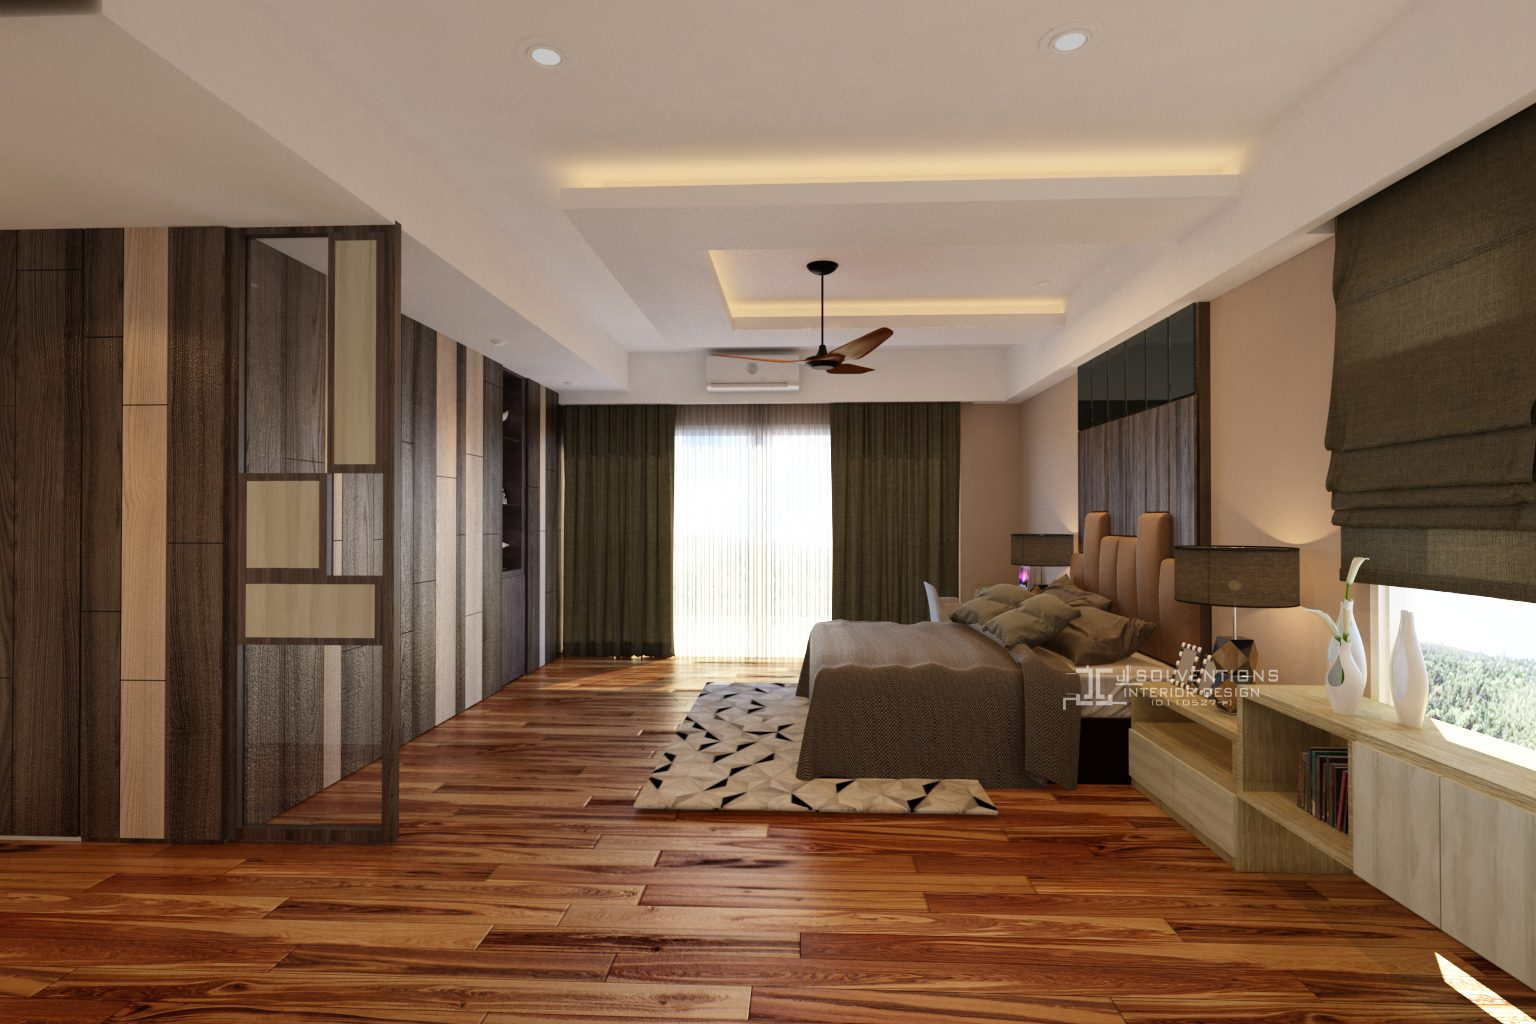 Mix of wooden tones for this large bedroom with floor to ceiling wardrobe and headboard